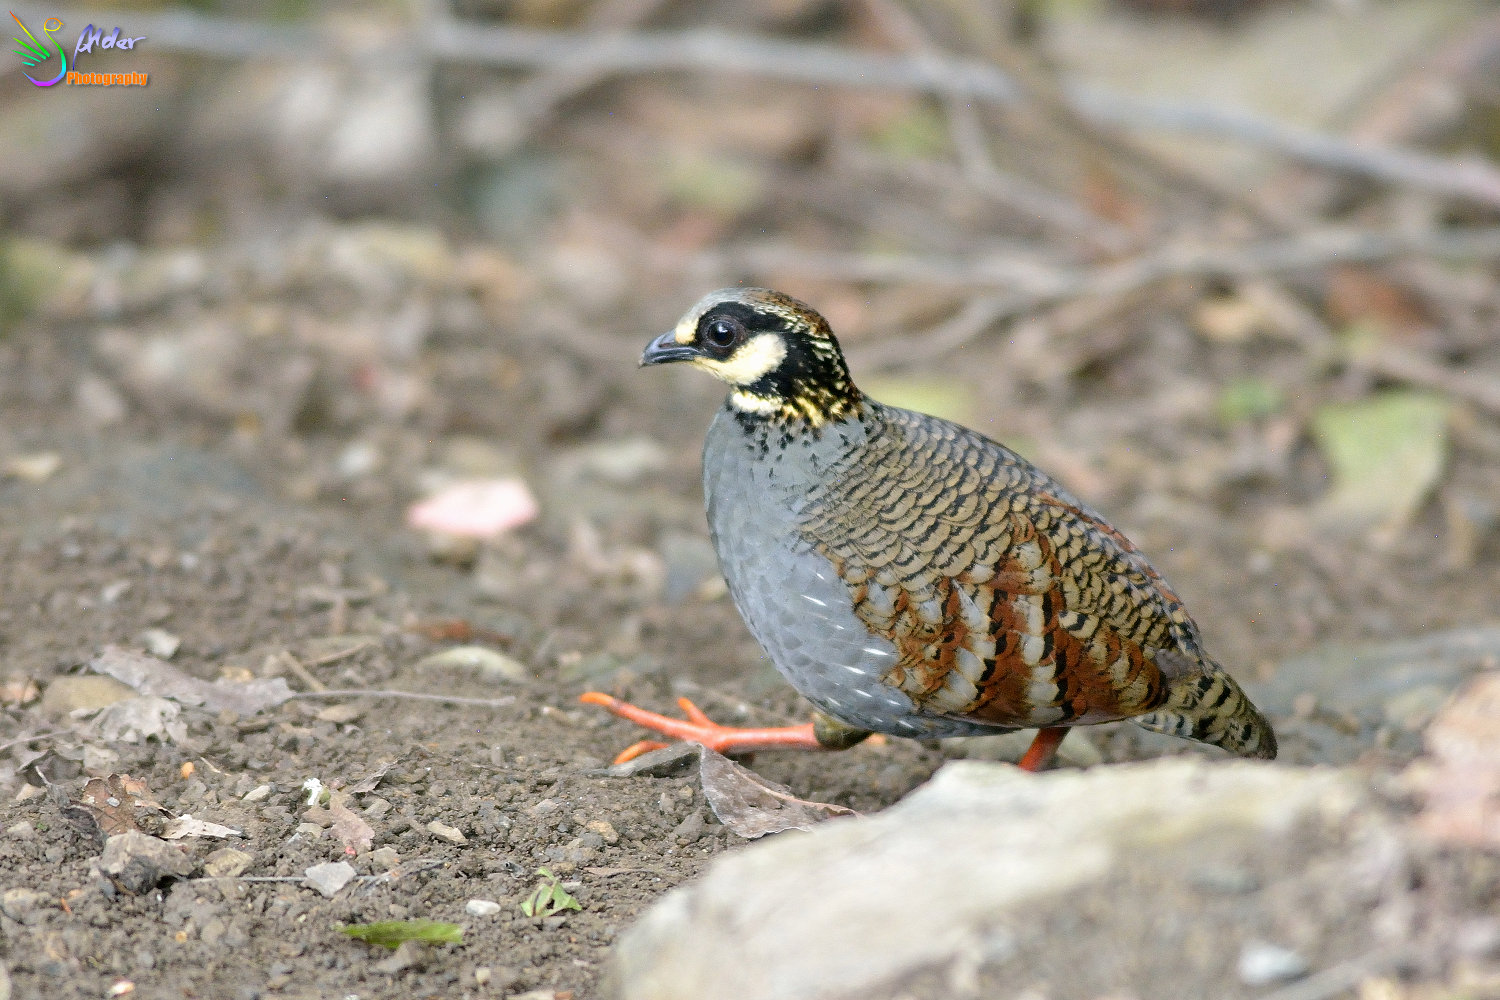 Formosan_Hill_Partridge_0537